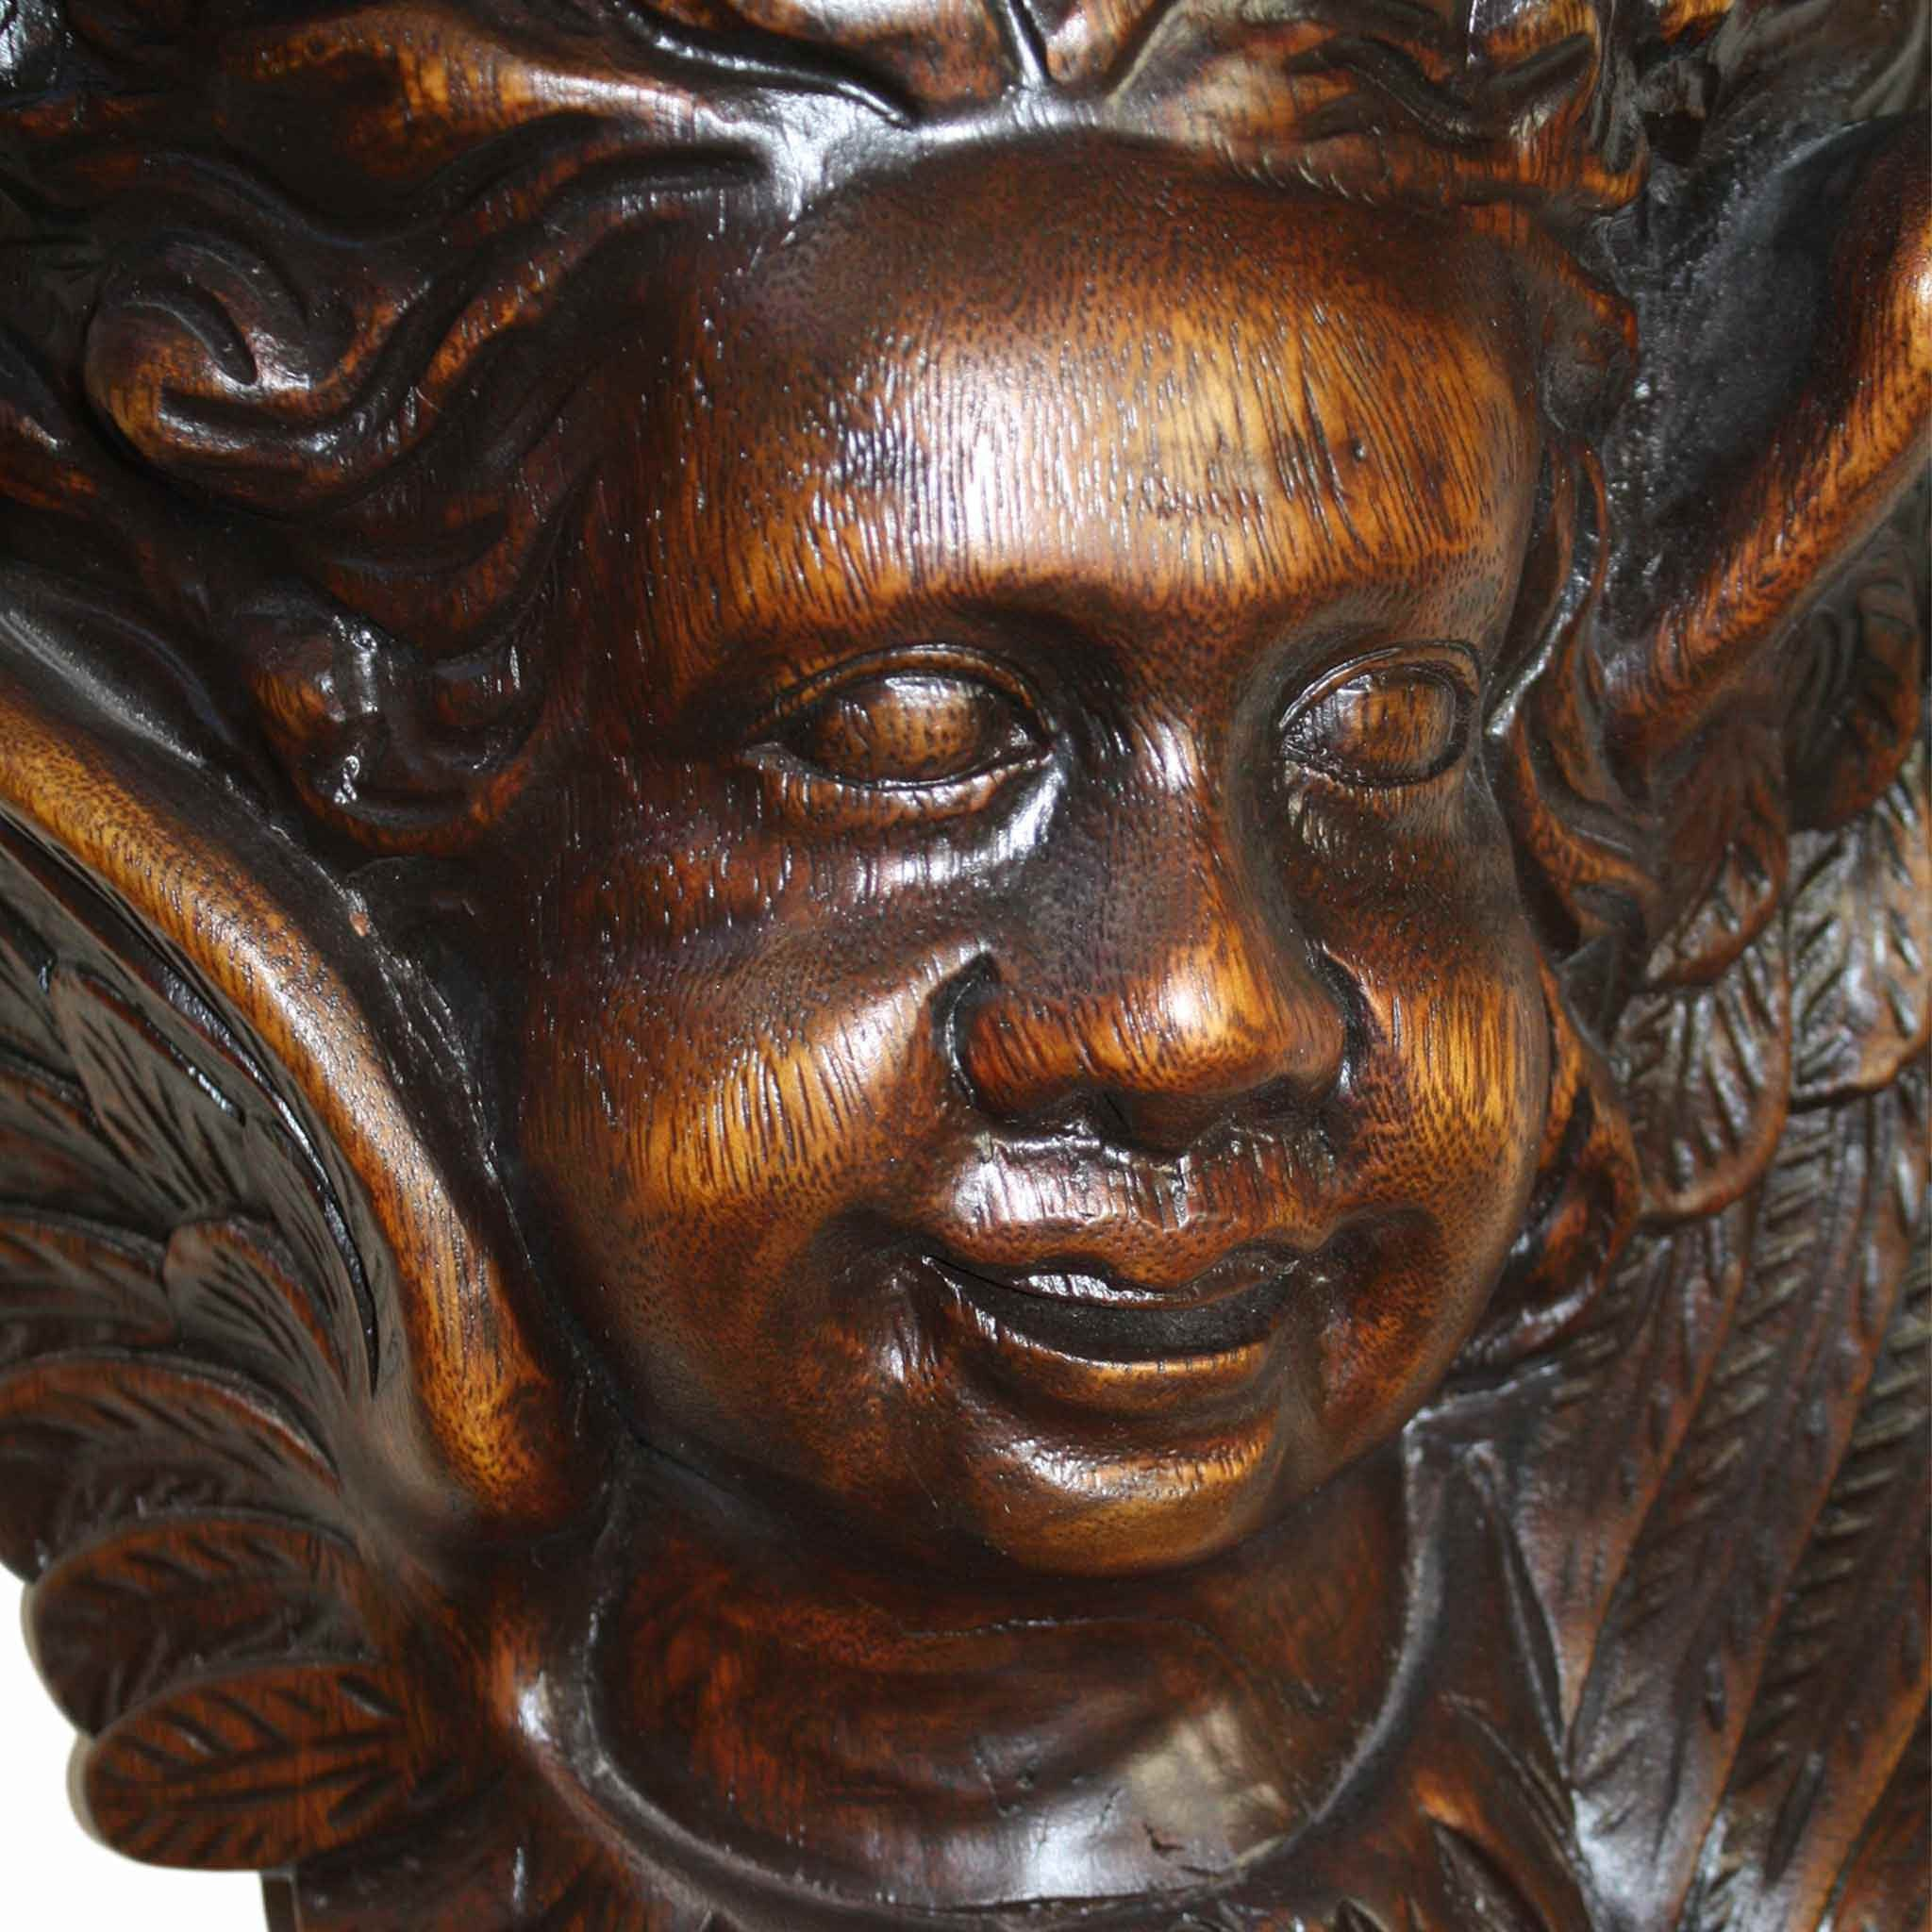 Shelf with Two Cherubs (1stdibs)